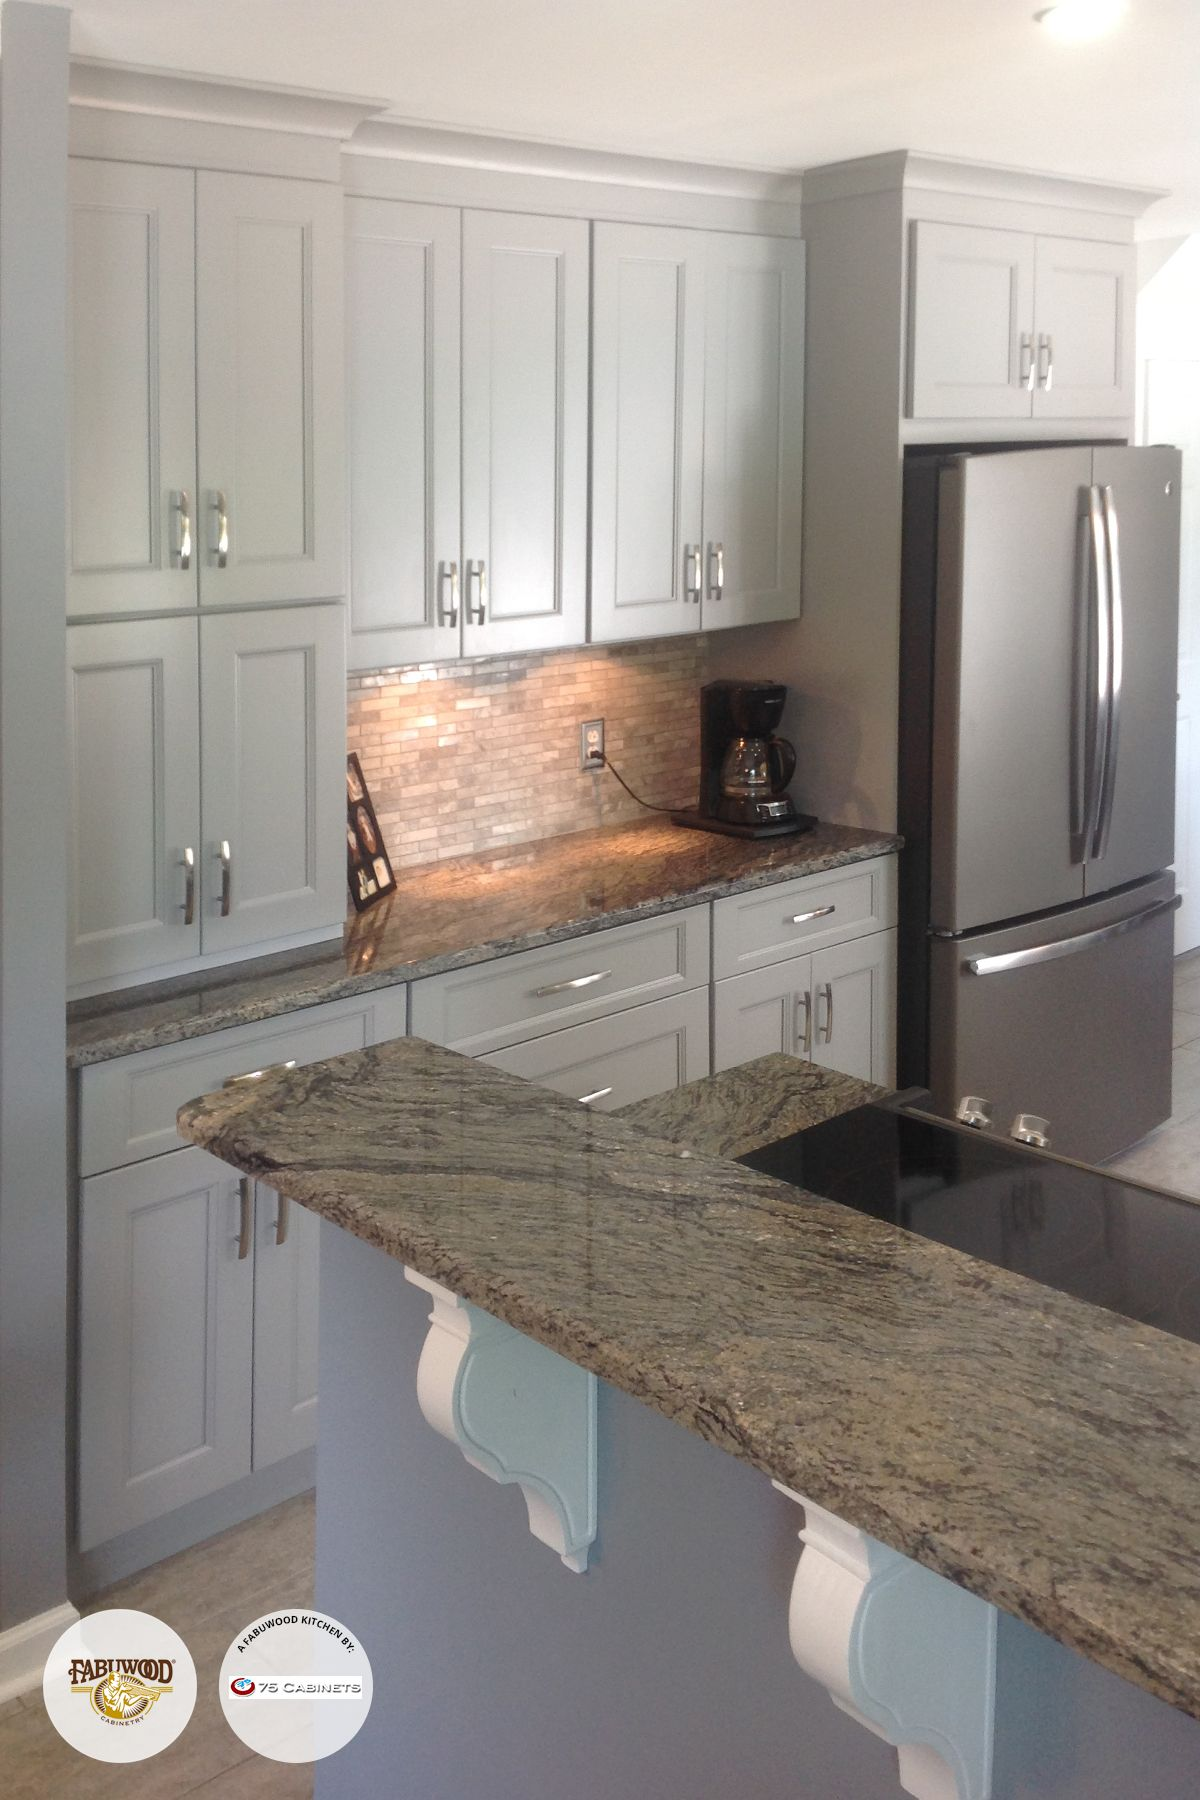 Nexus Slate Fabuwood Cabinets By 75 Cabinets In Warrington Pa Affordable Farmhouse Kitchen Slate Appliances Kitchen Slate Appliances